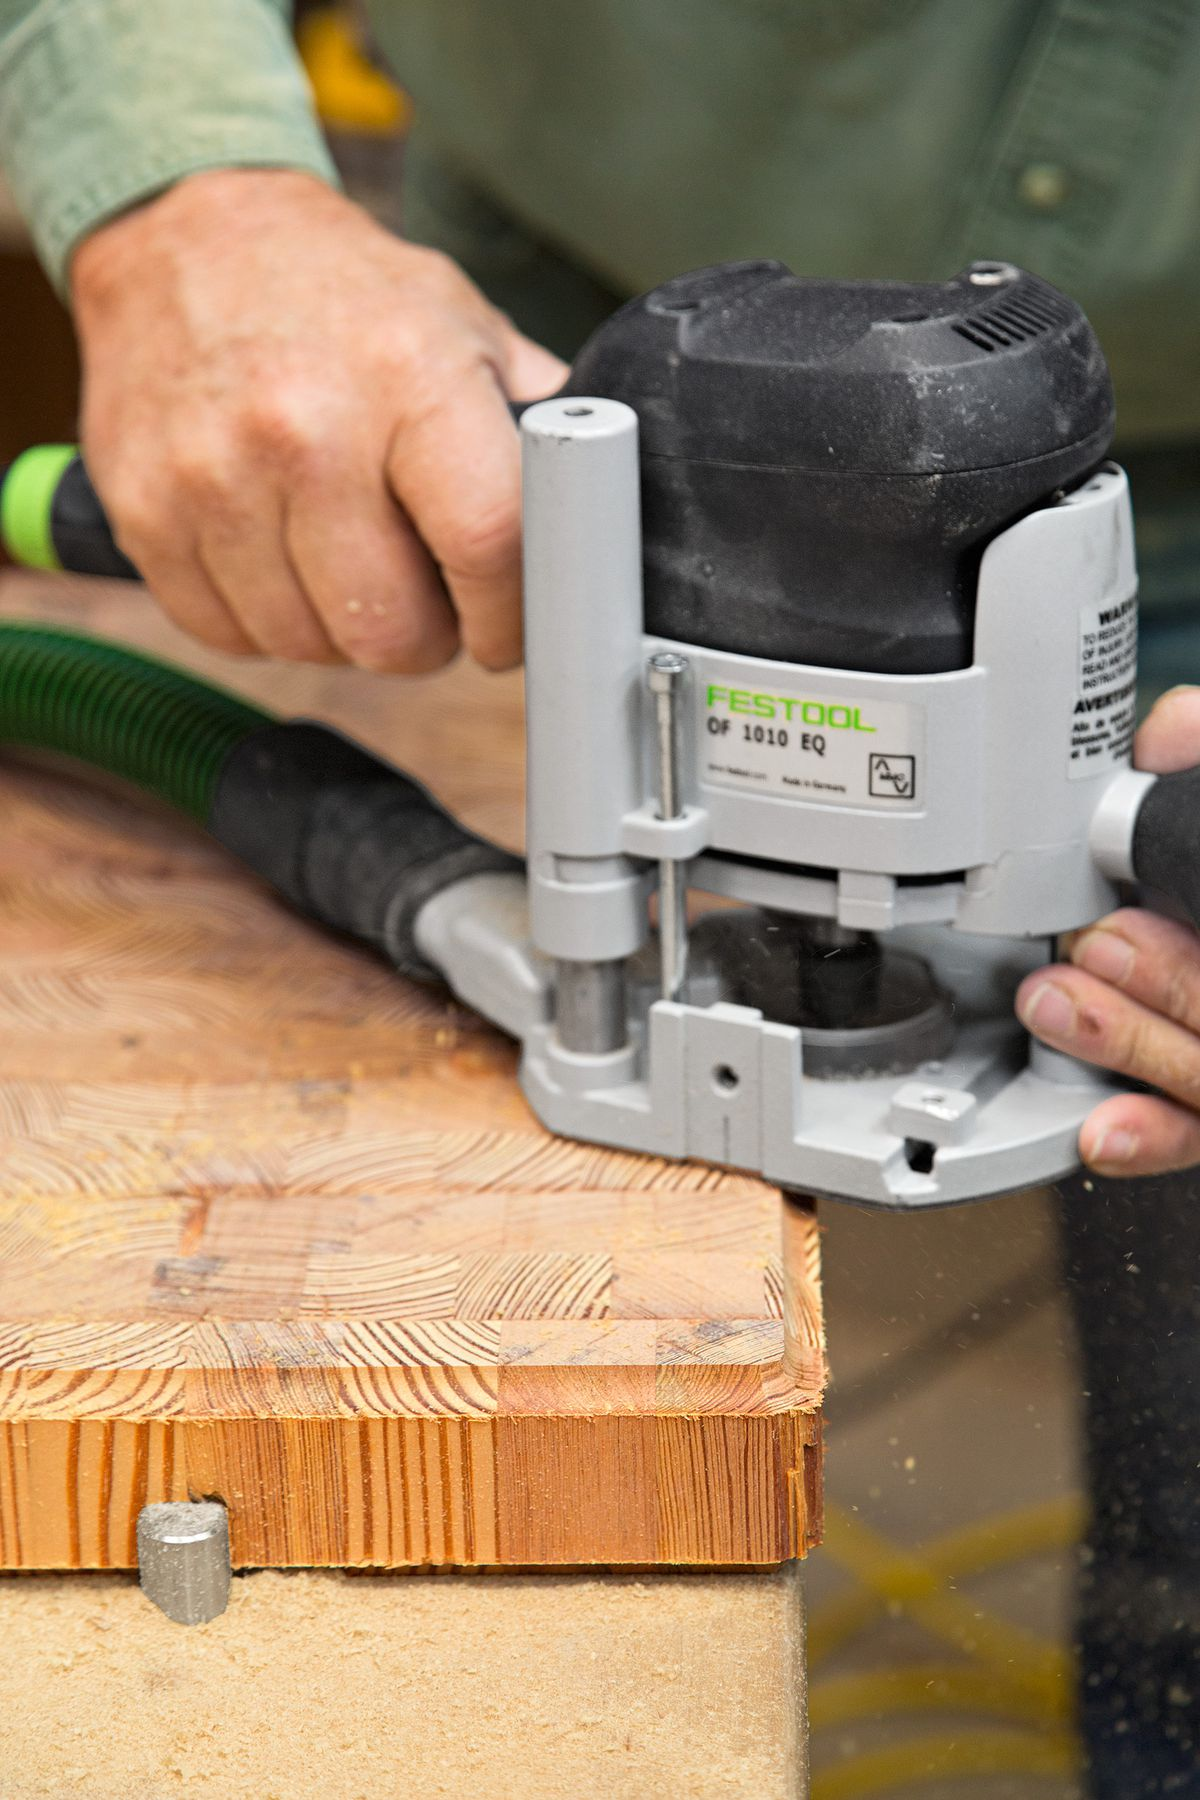 Person using router on wood to finish end grain cutting board.